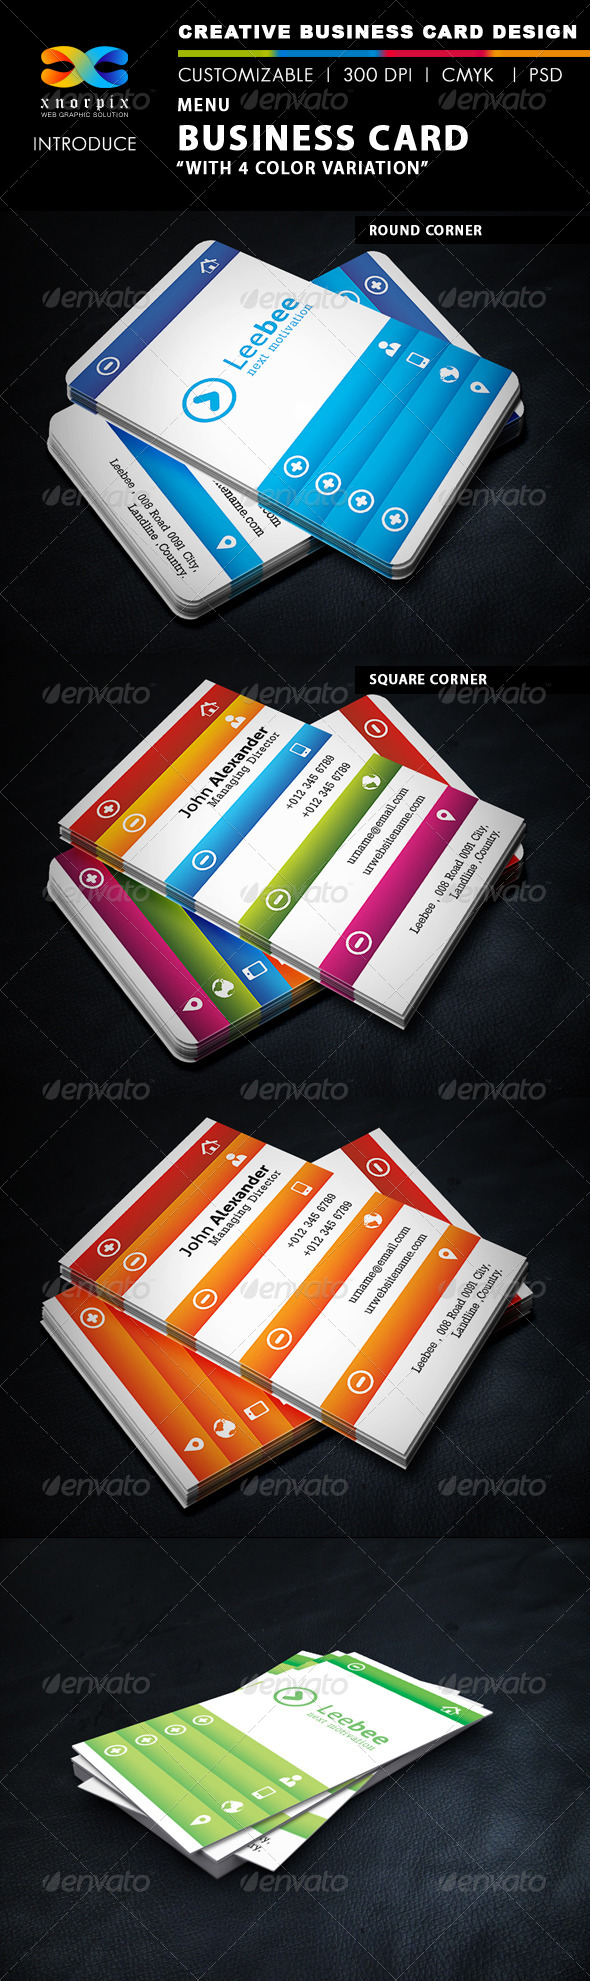 Menu Business Card Business Cards Print Templates And Fonts Download